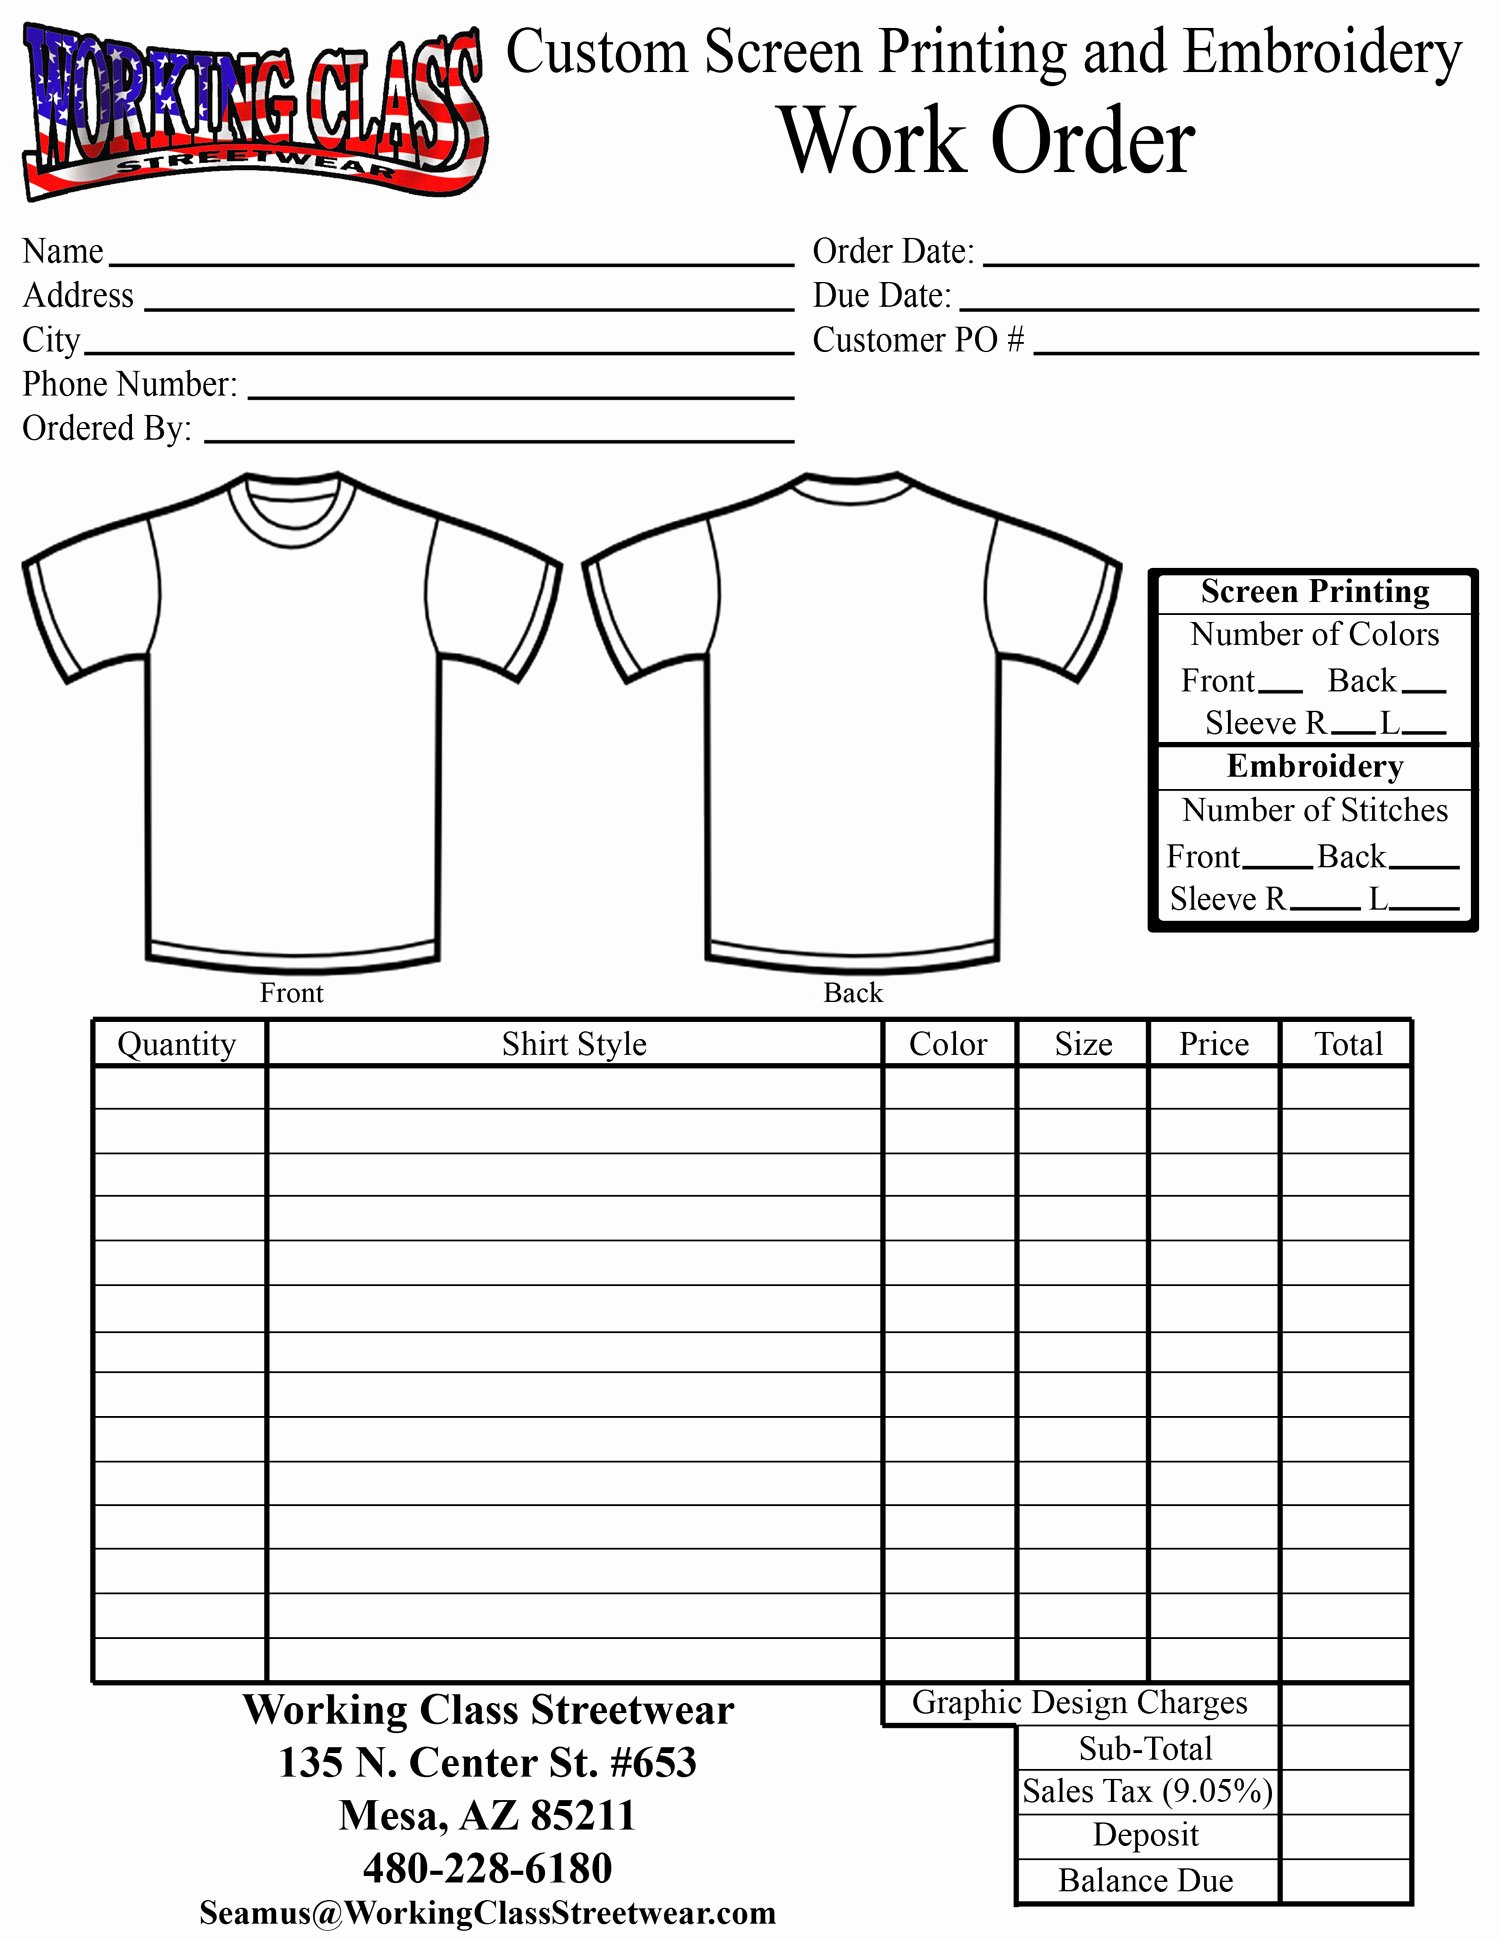 Embroidery order form Template New Embroidery Work order form Template